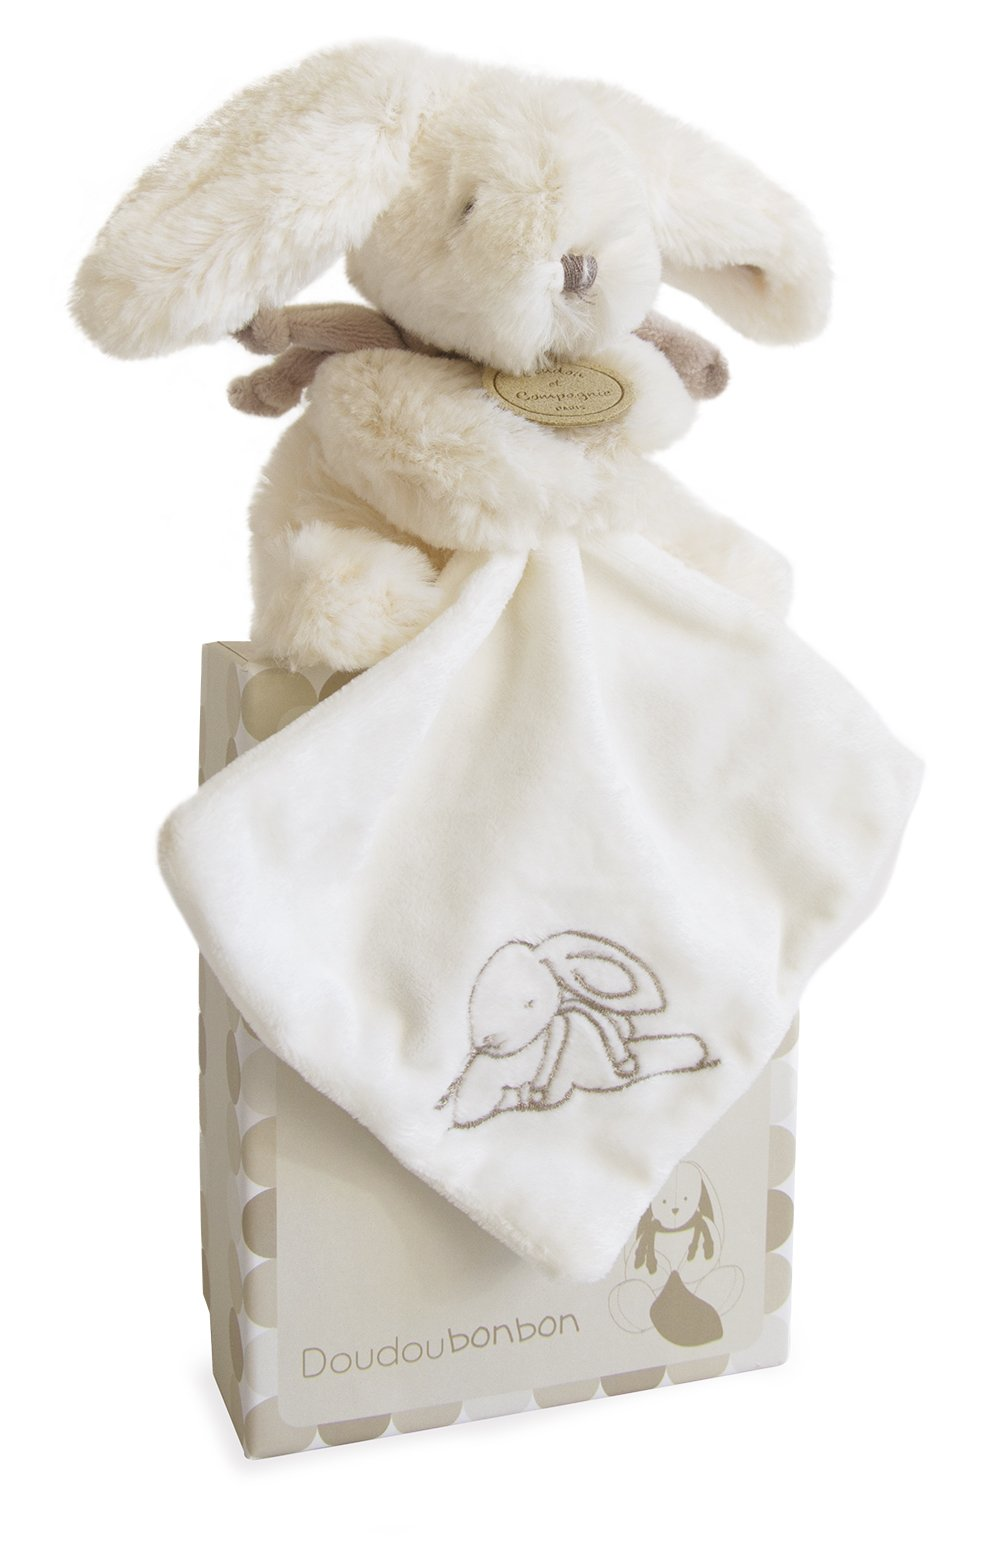 DOUDOU ET COMPAGNIE - White & Taupe Small Soft Bunny with Blankie